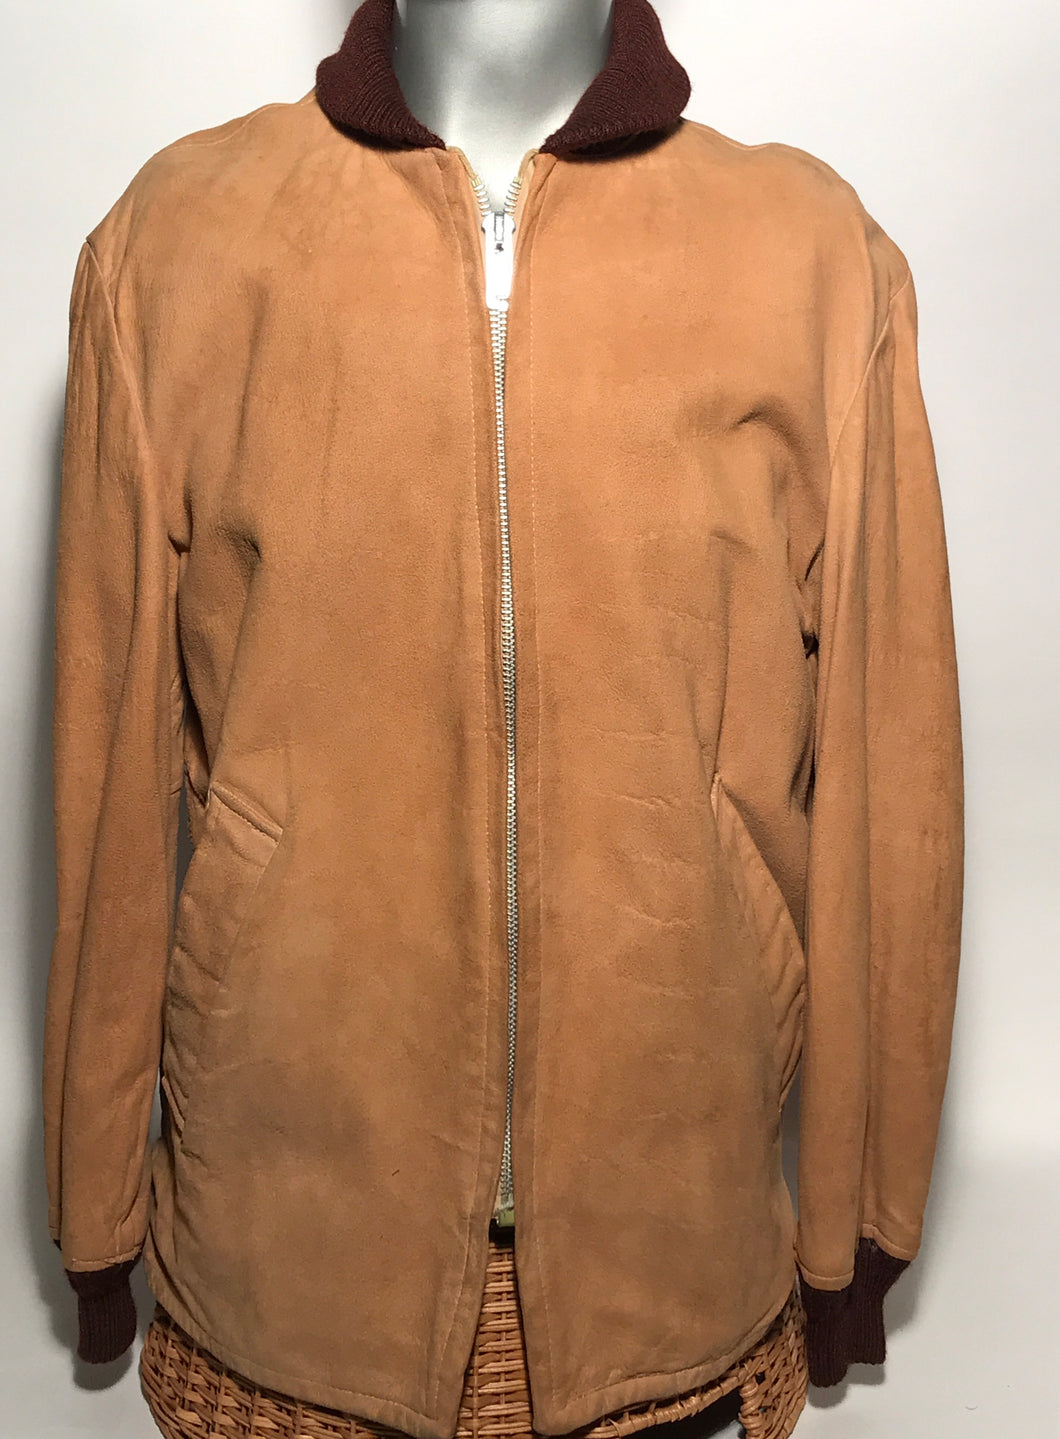 Vintage Late 1950s Men's McGregor Light Brown Suede Jacket Size 42